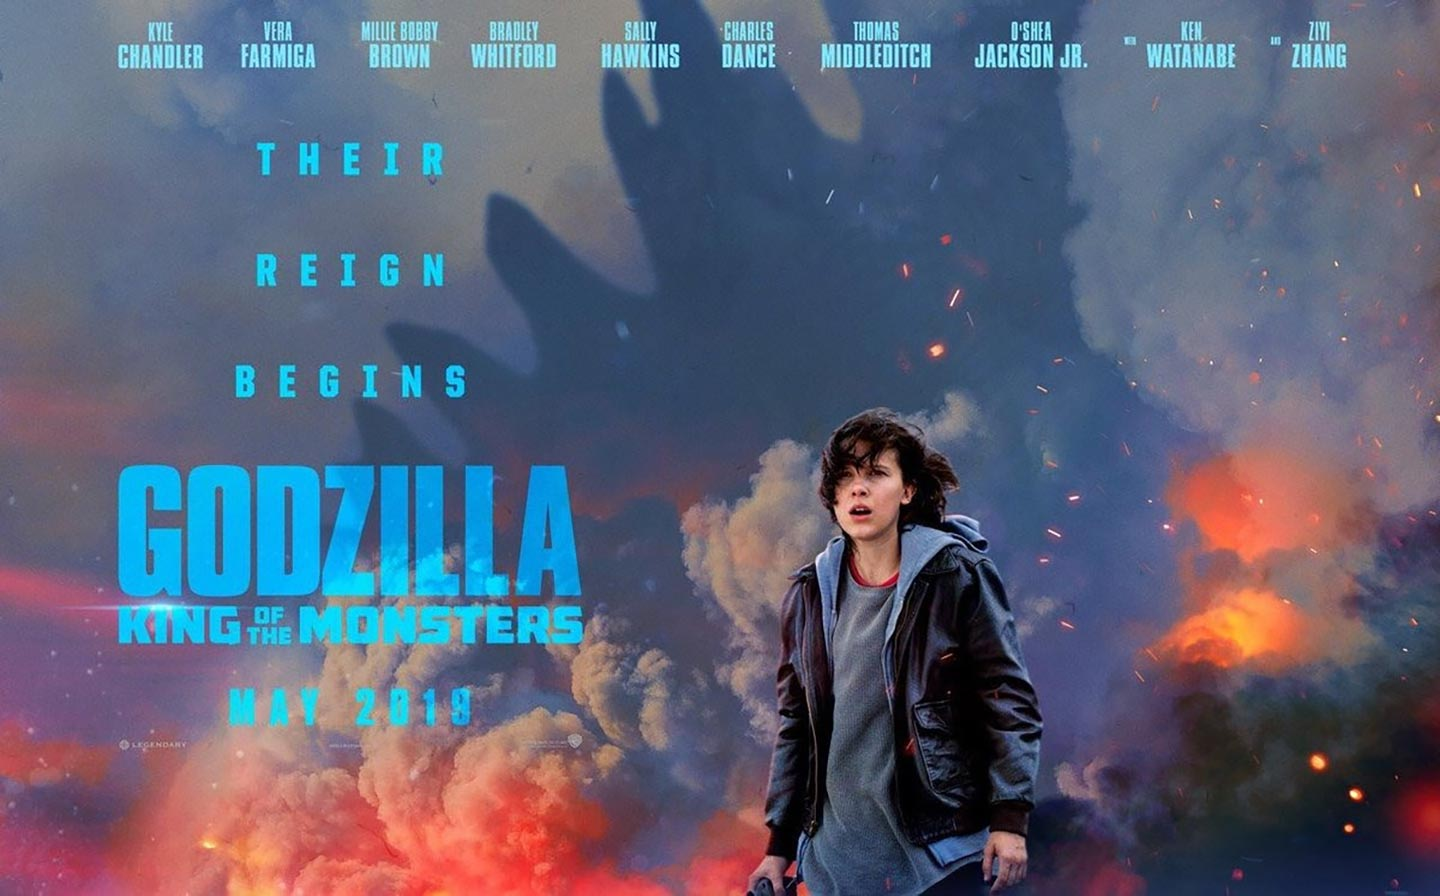 ãgodzilla king of the monsters posterãã®ç»åæ¤ç´¢çµæ